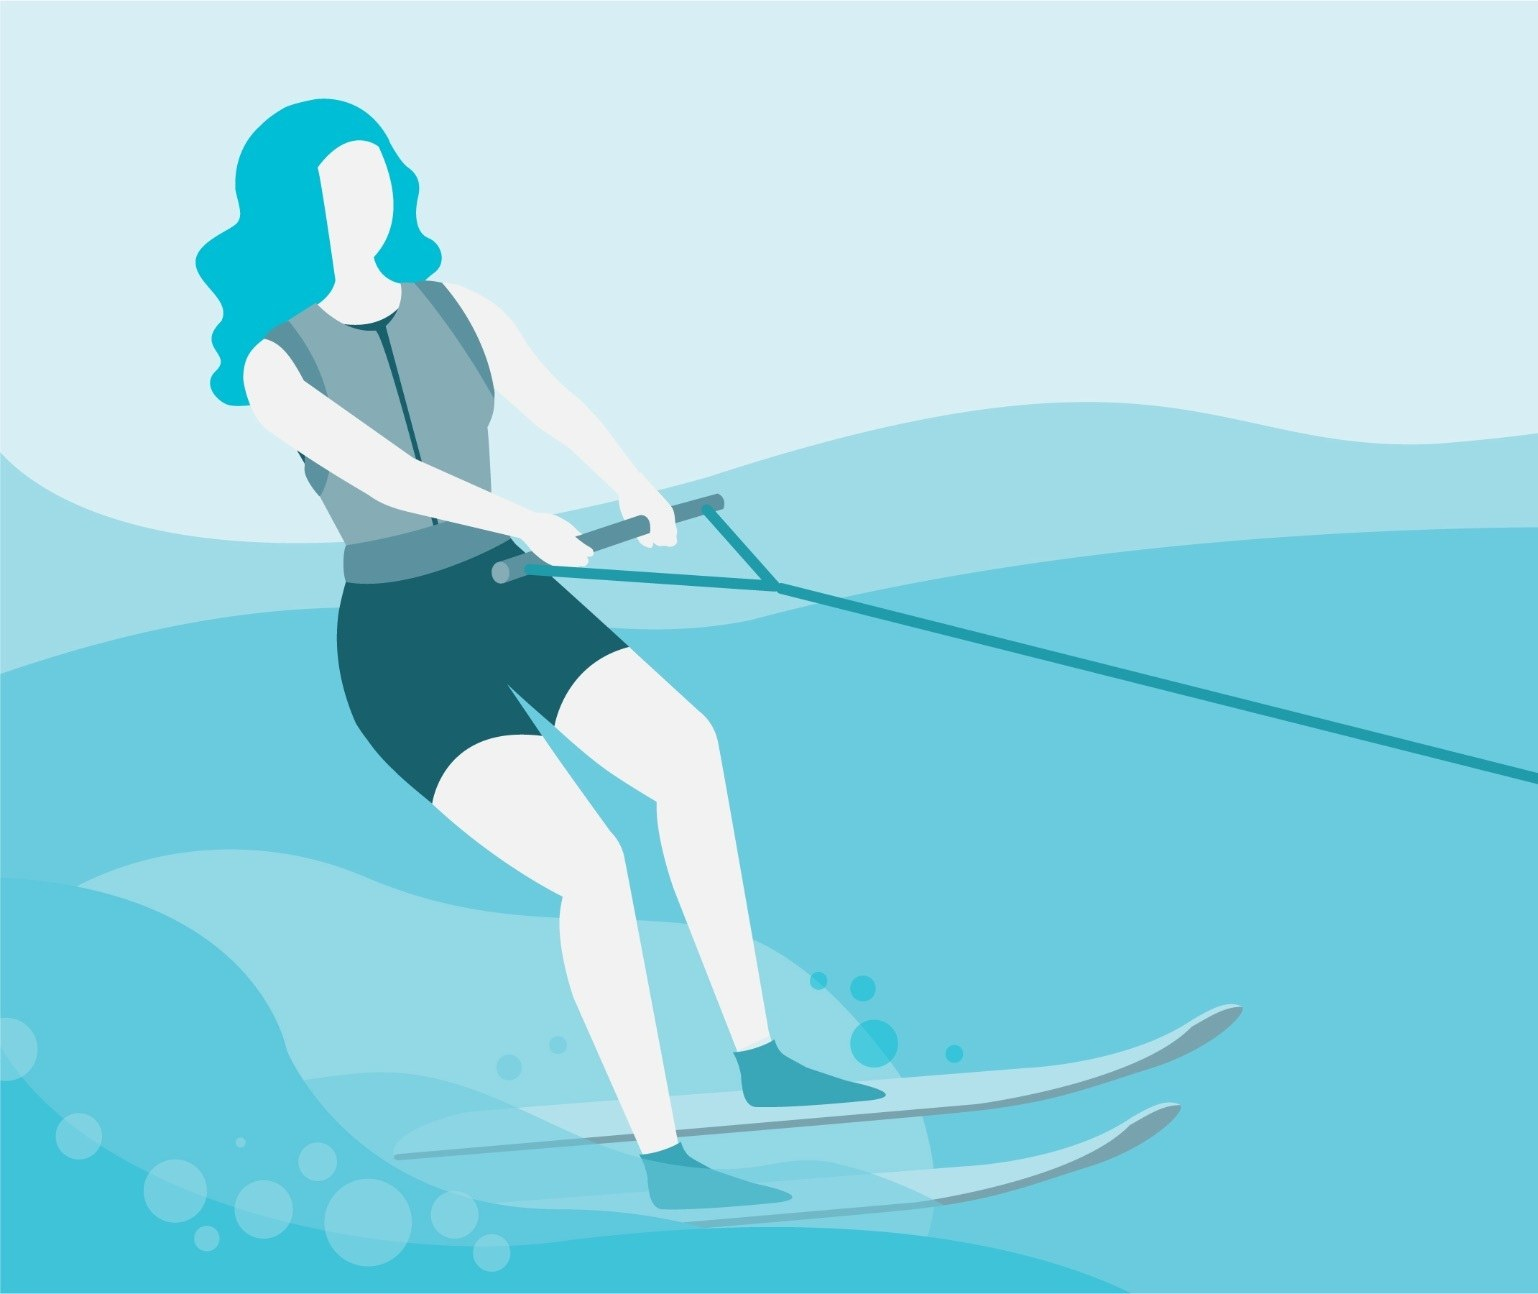 Illustration of a woman water skiing in a monochromatic blue